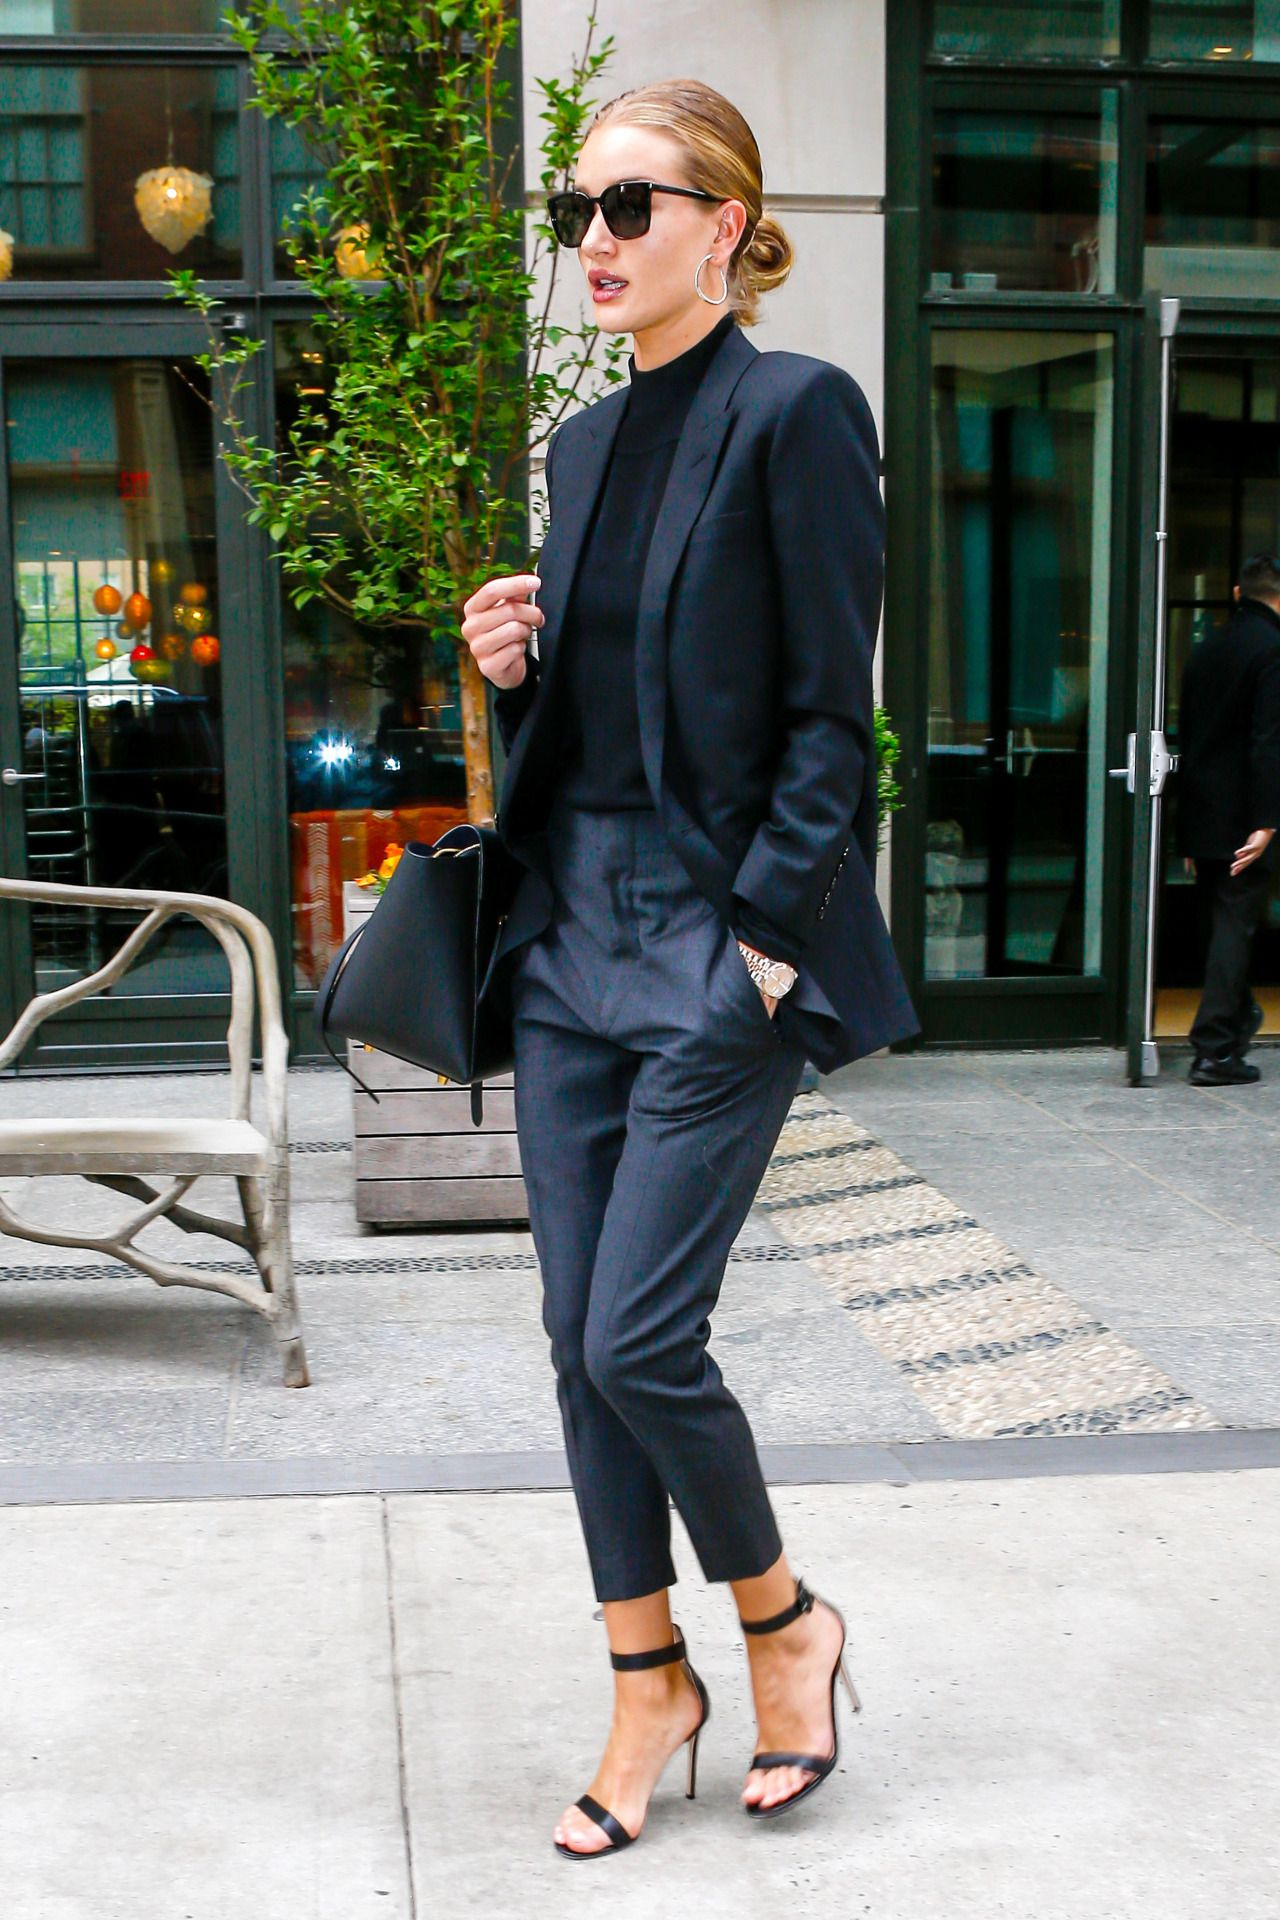 rosie hw s t y l e pinterest business kleidung mode ber 40 und business outfit. Black Bedroom Furniture Sets. Home Design Ideas